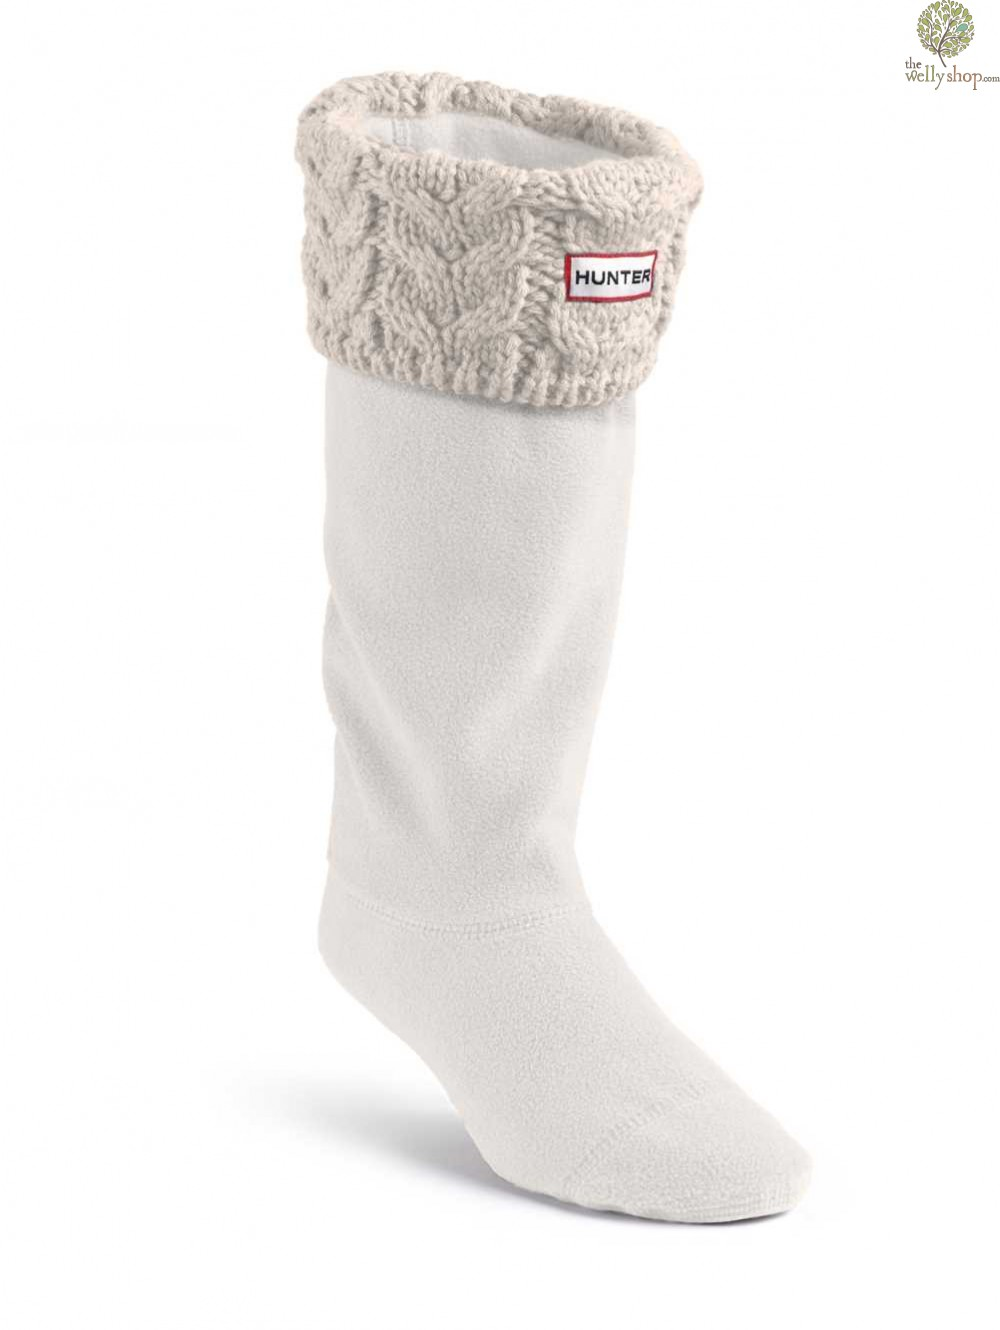 Knitting Pattern For Baby Wellies : Hunter Chunky Cable Welly Warmers Socks